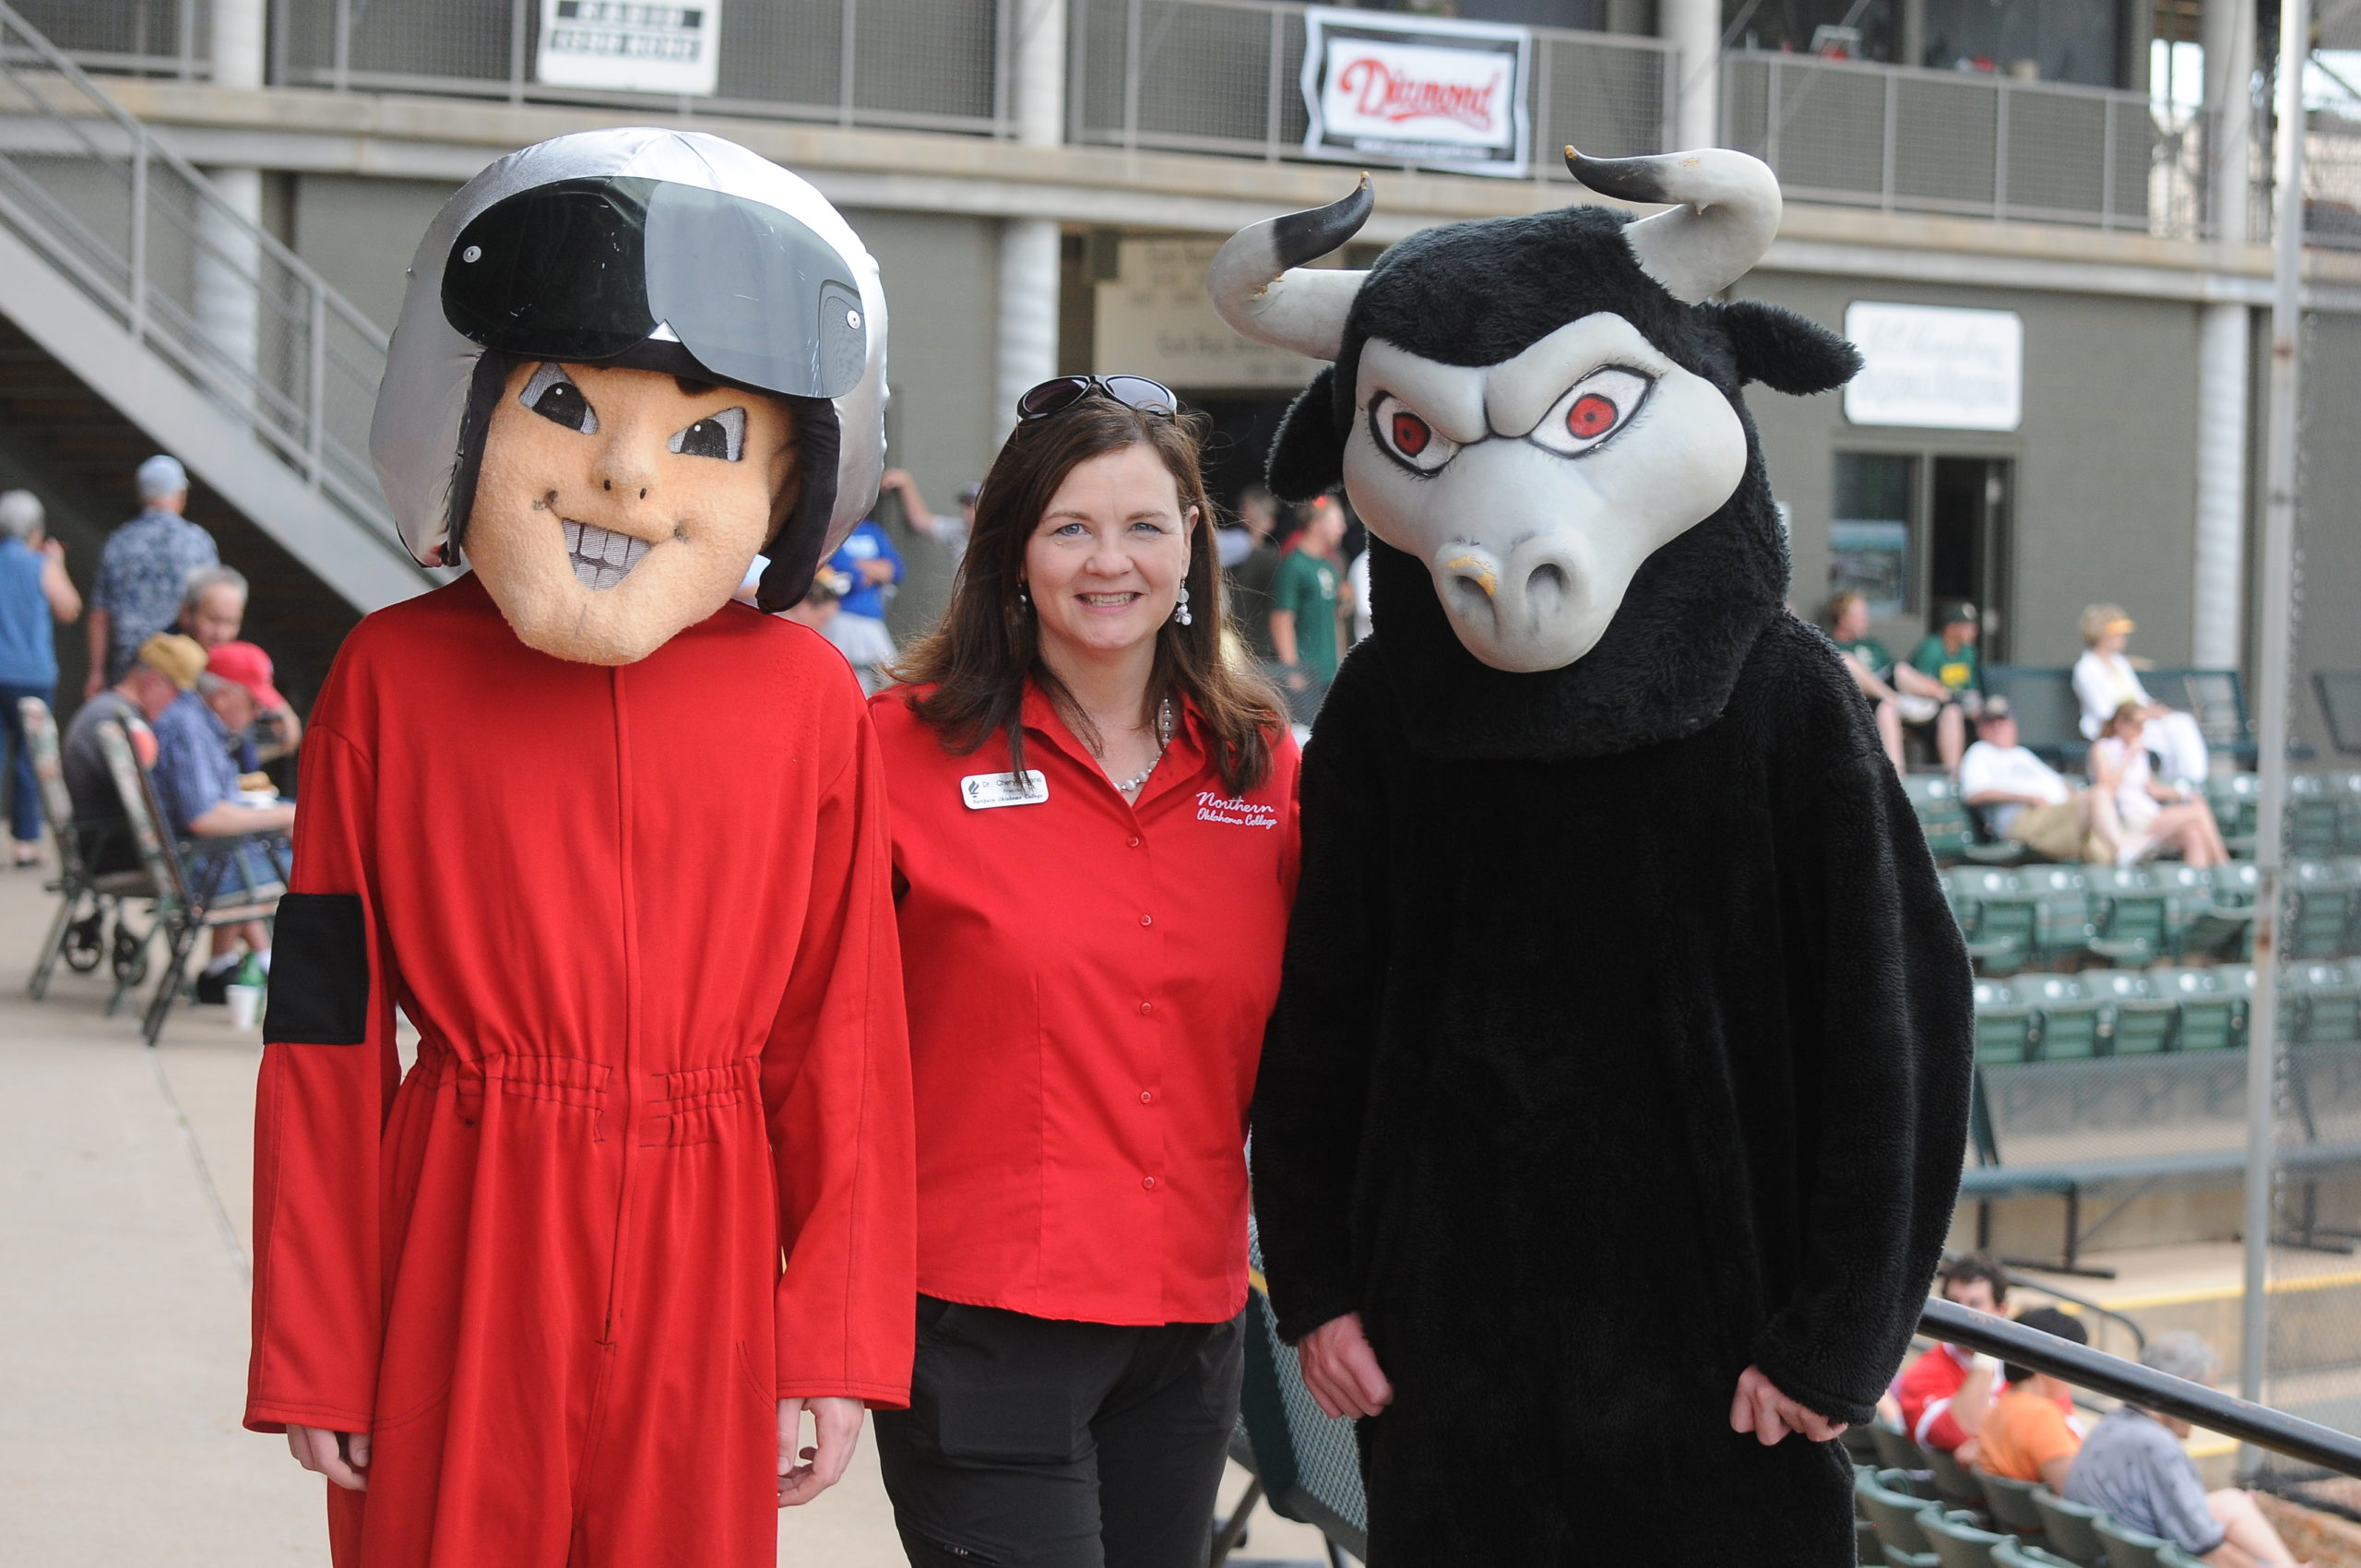 NOC President and Mascots